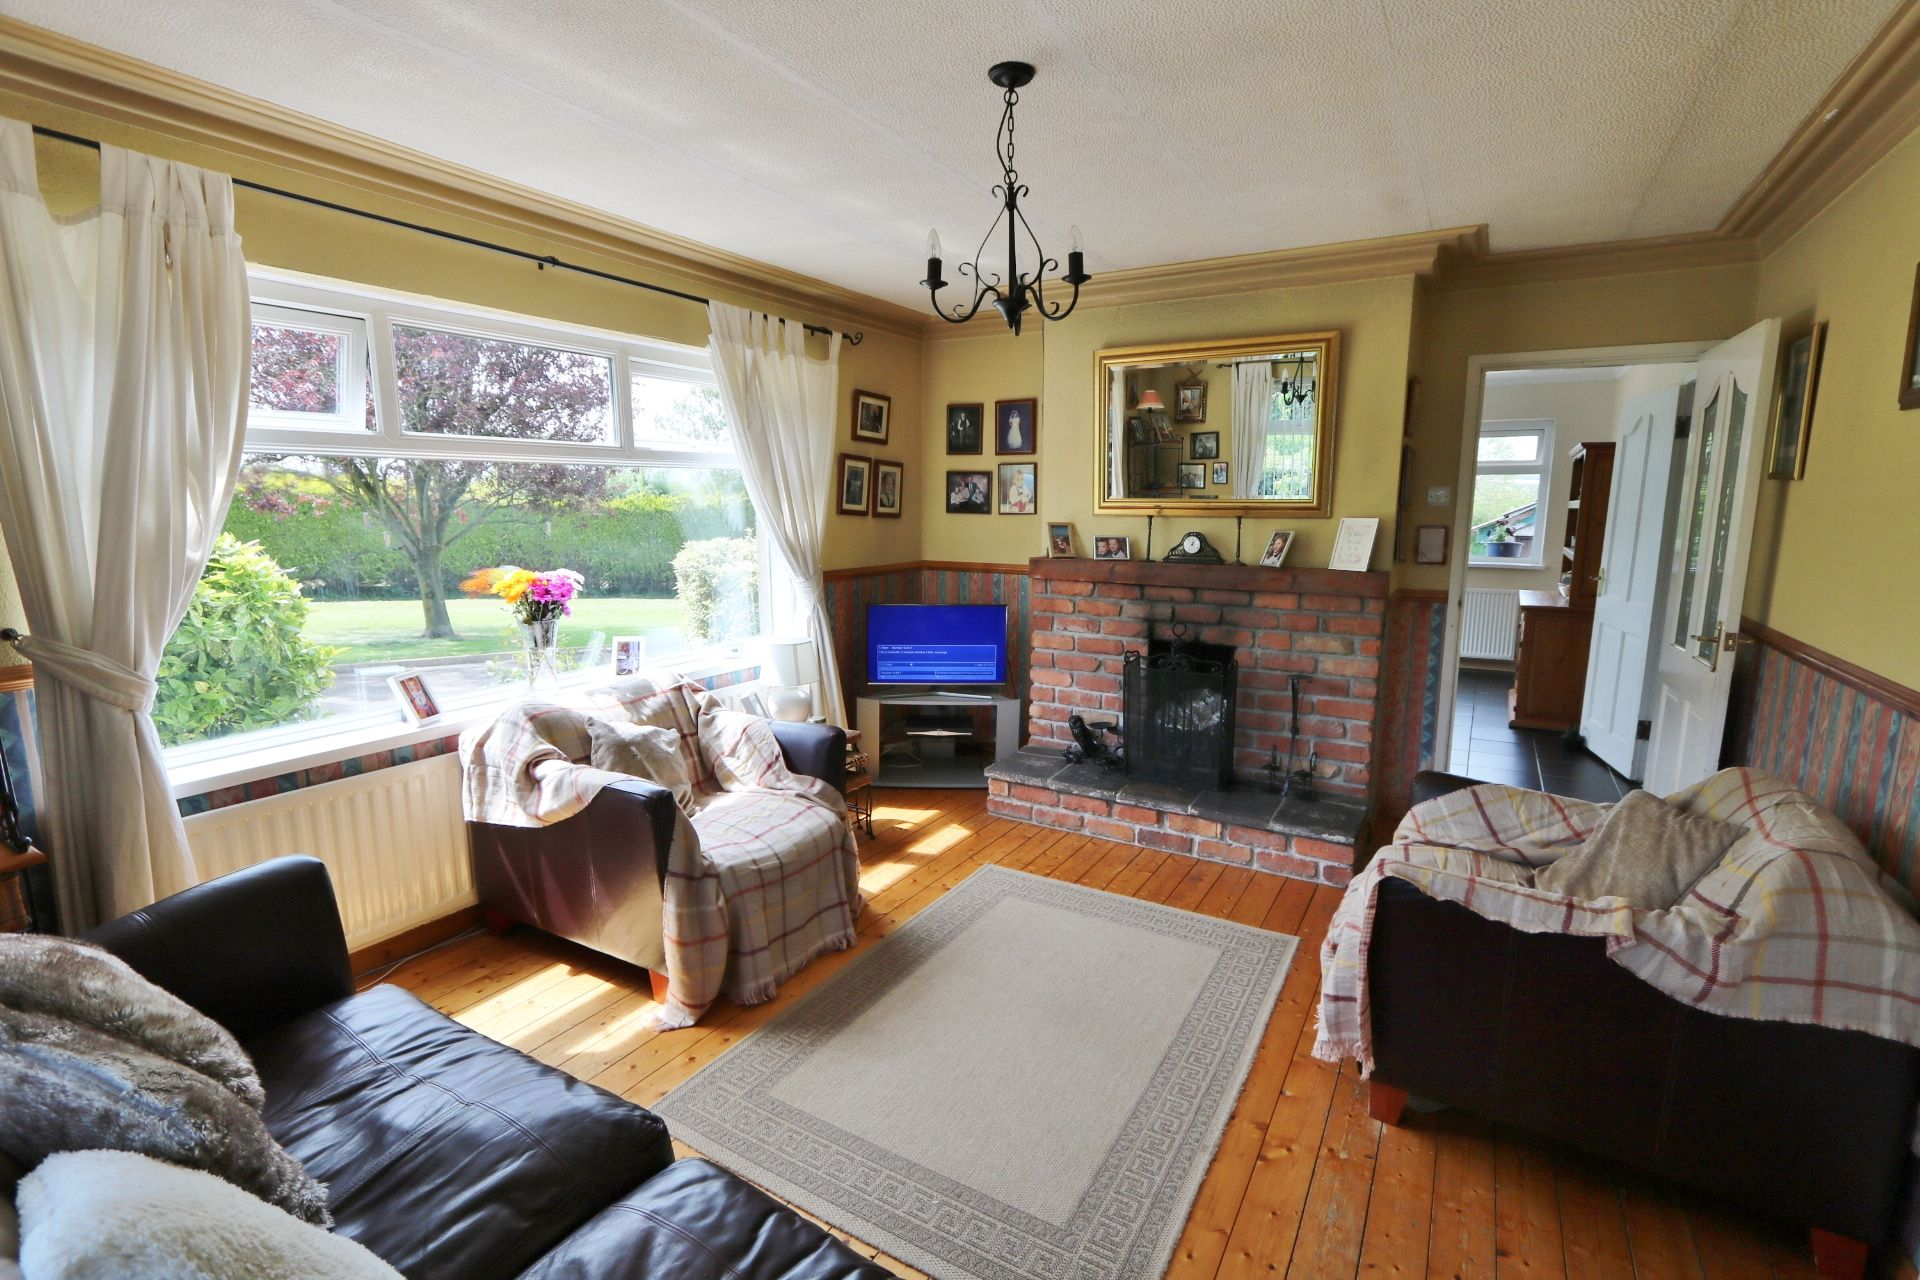 3 bedroom detached bungalow For Sale in Randalstown - Photograph 6